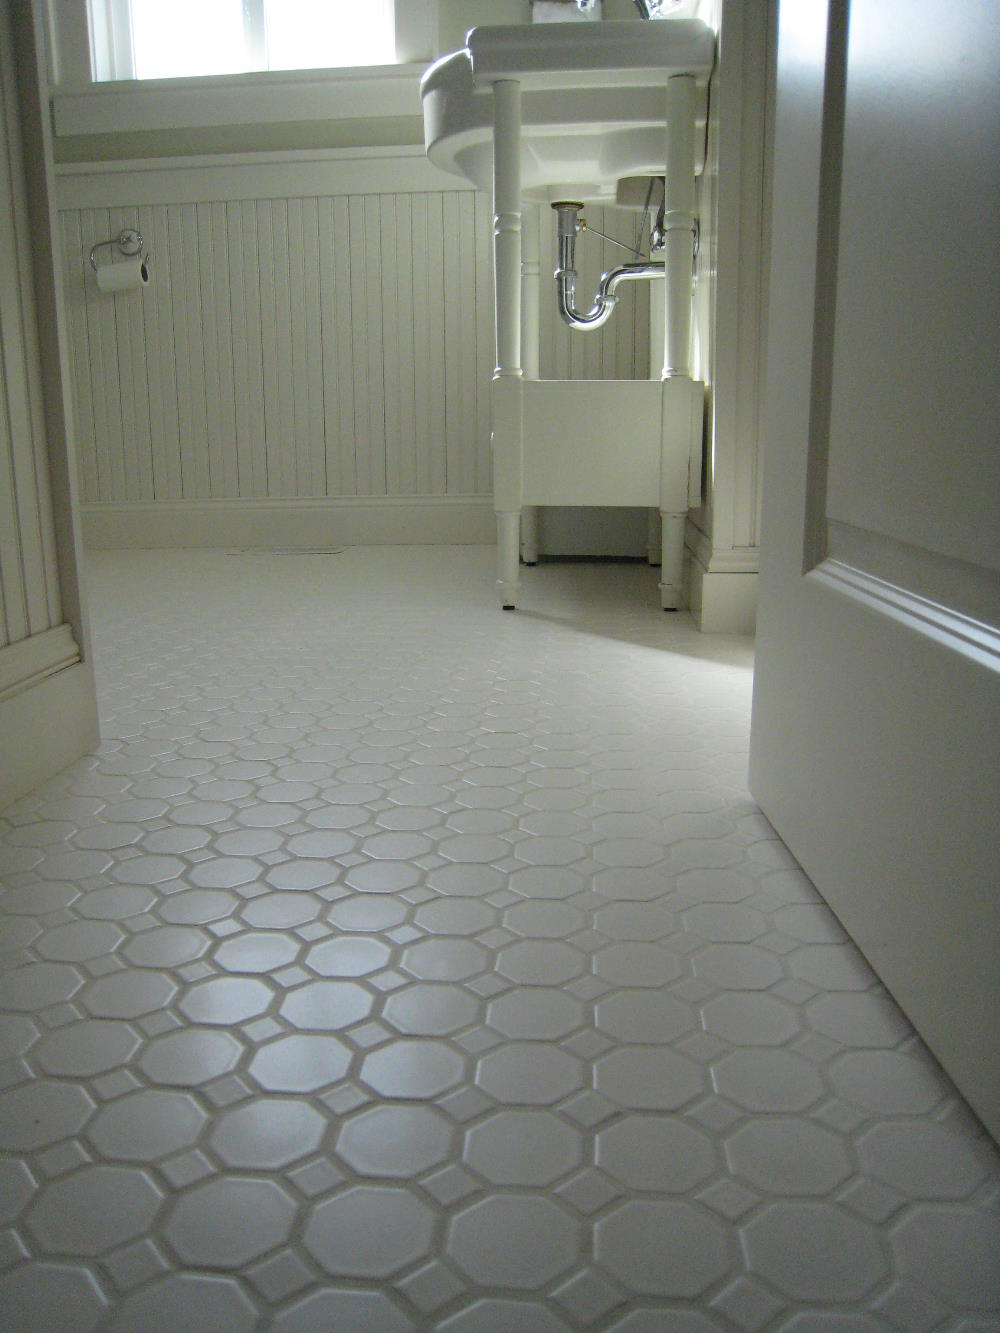 Angelic Bathroom Decoration Idea Using White Tile Flooring also Sink